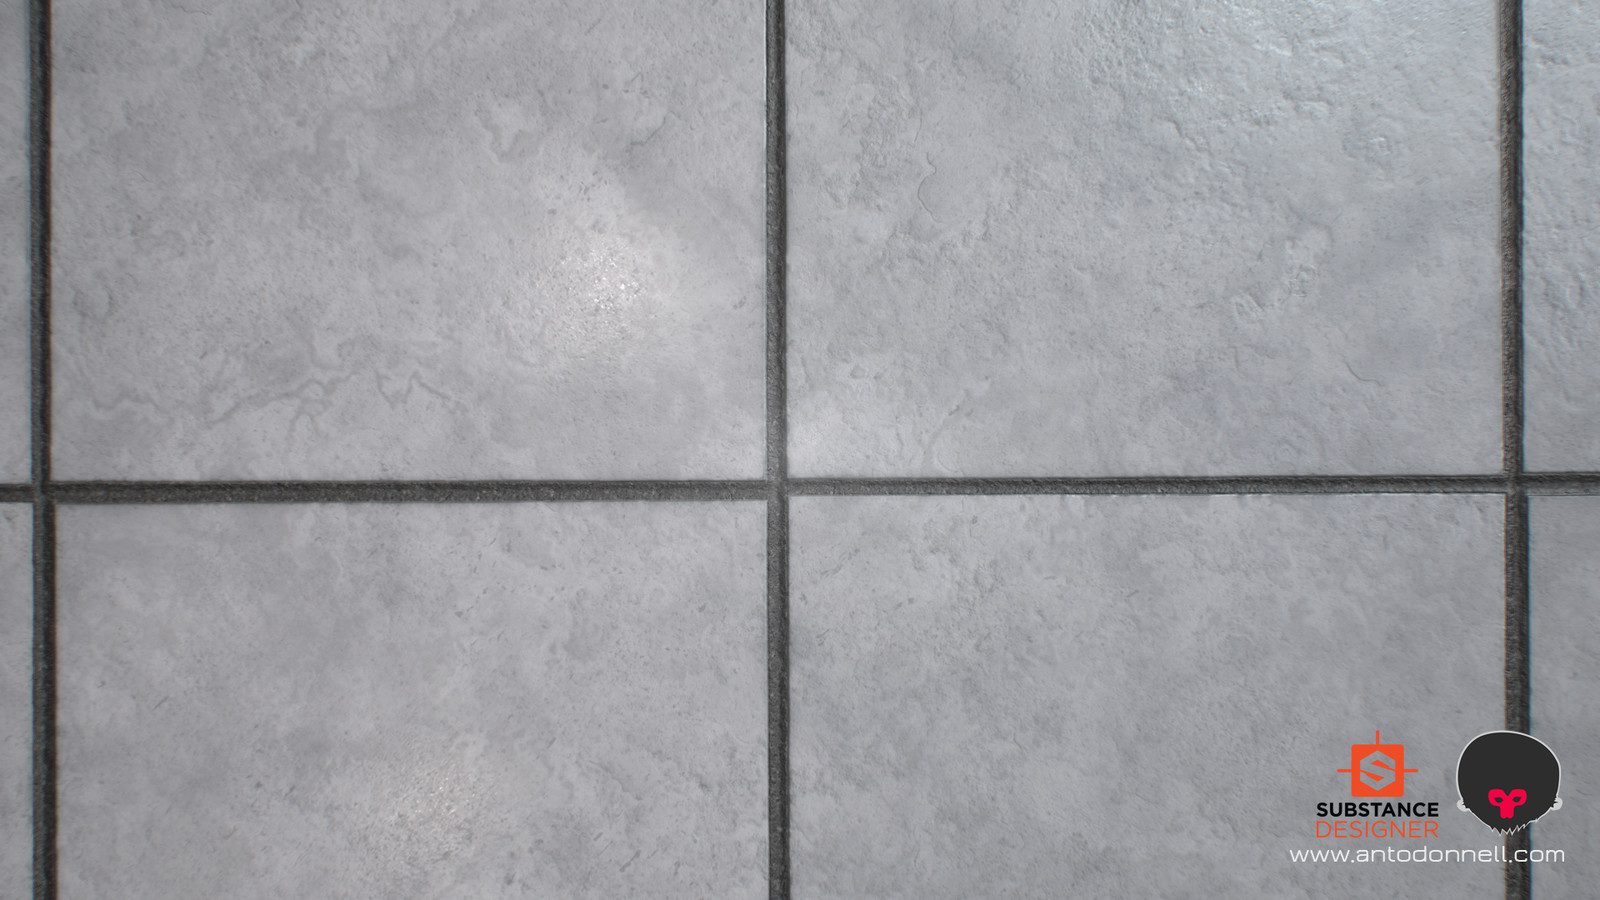 A shot of the floor tiles material